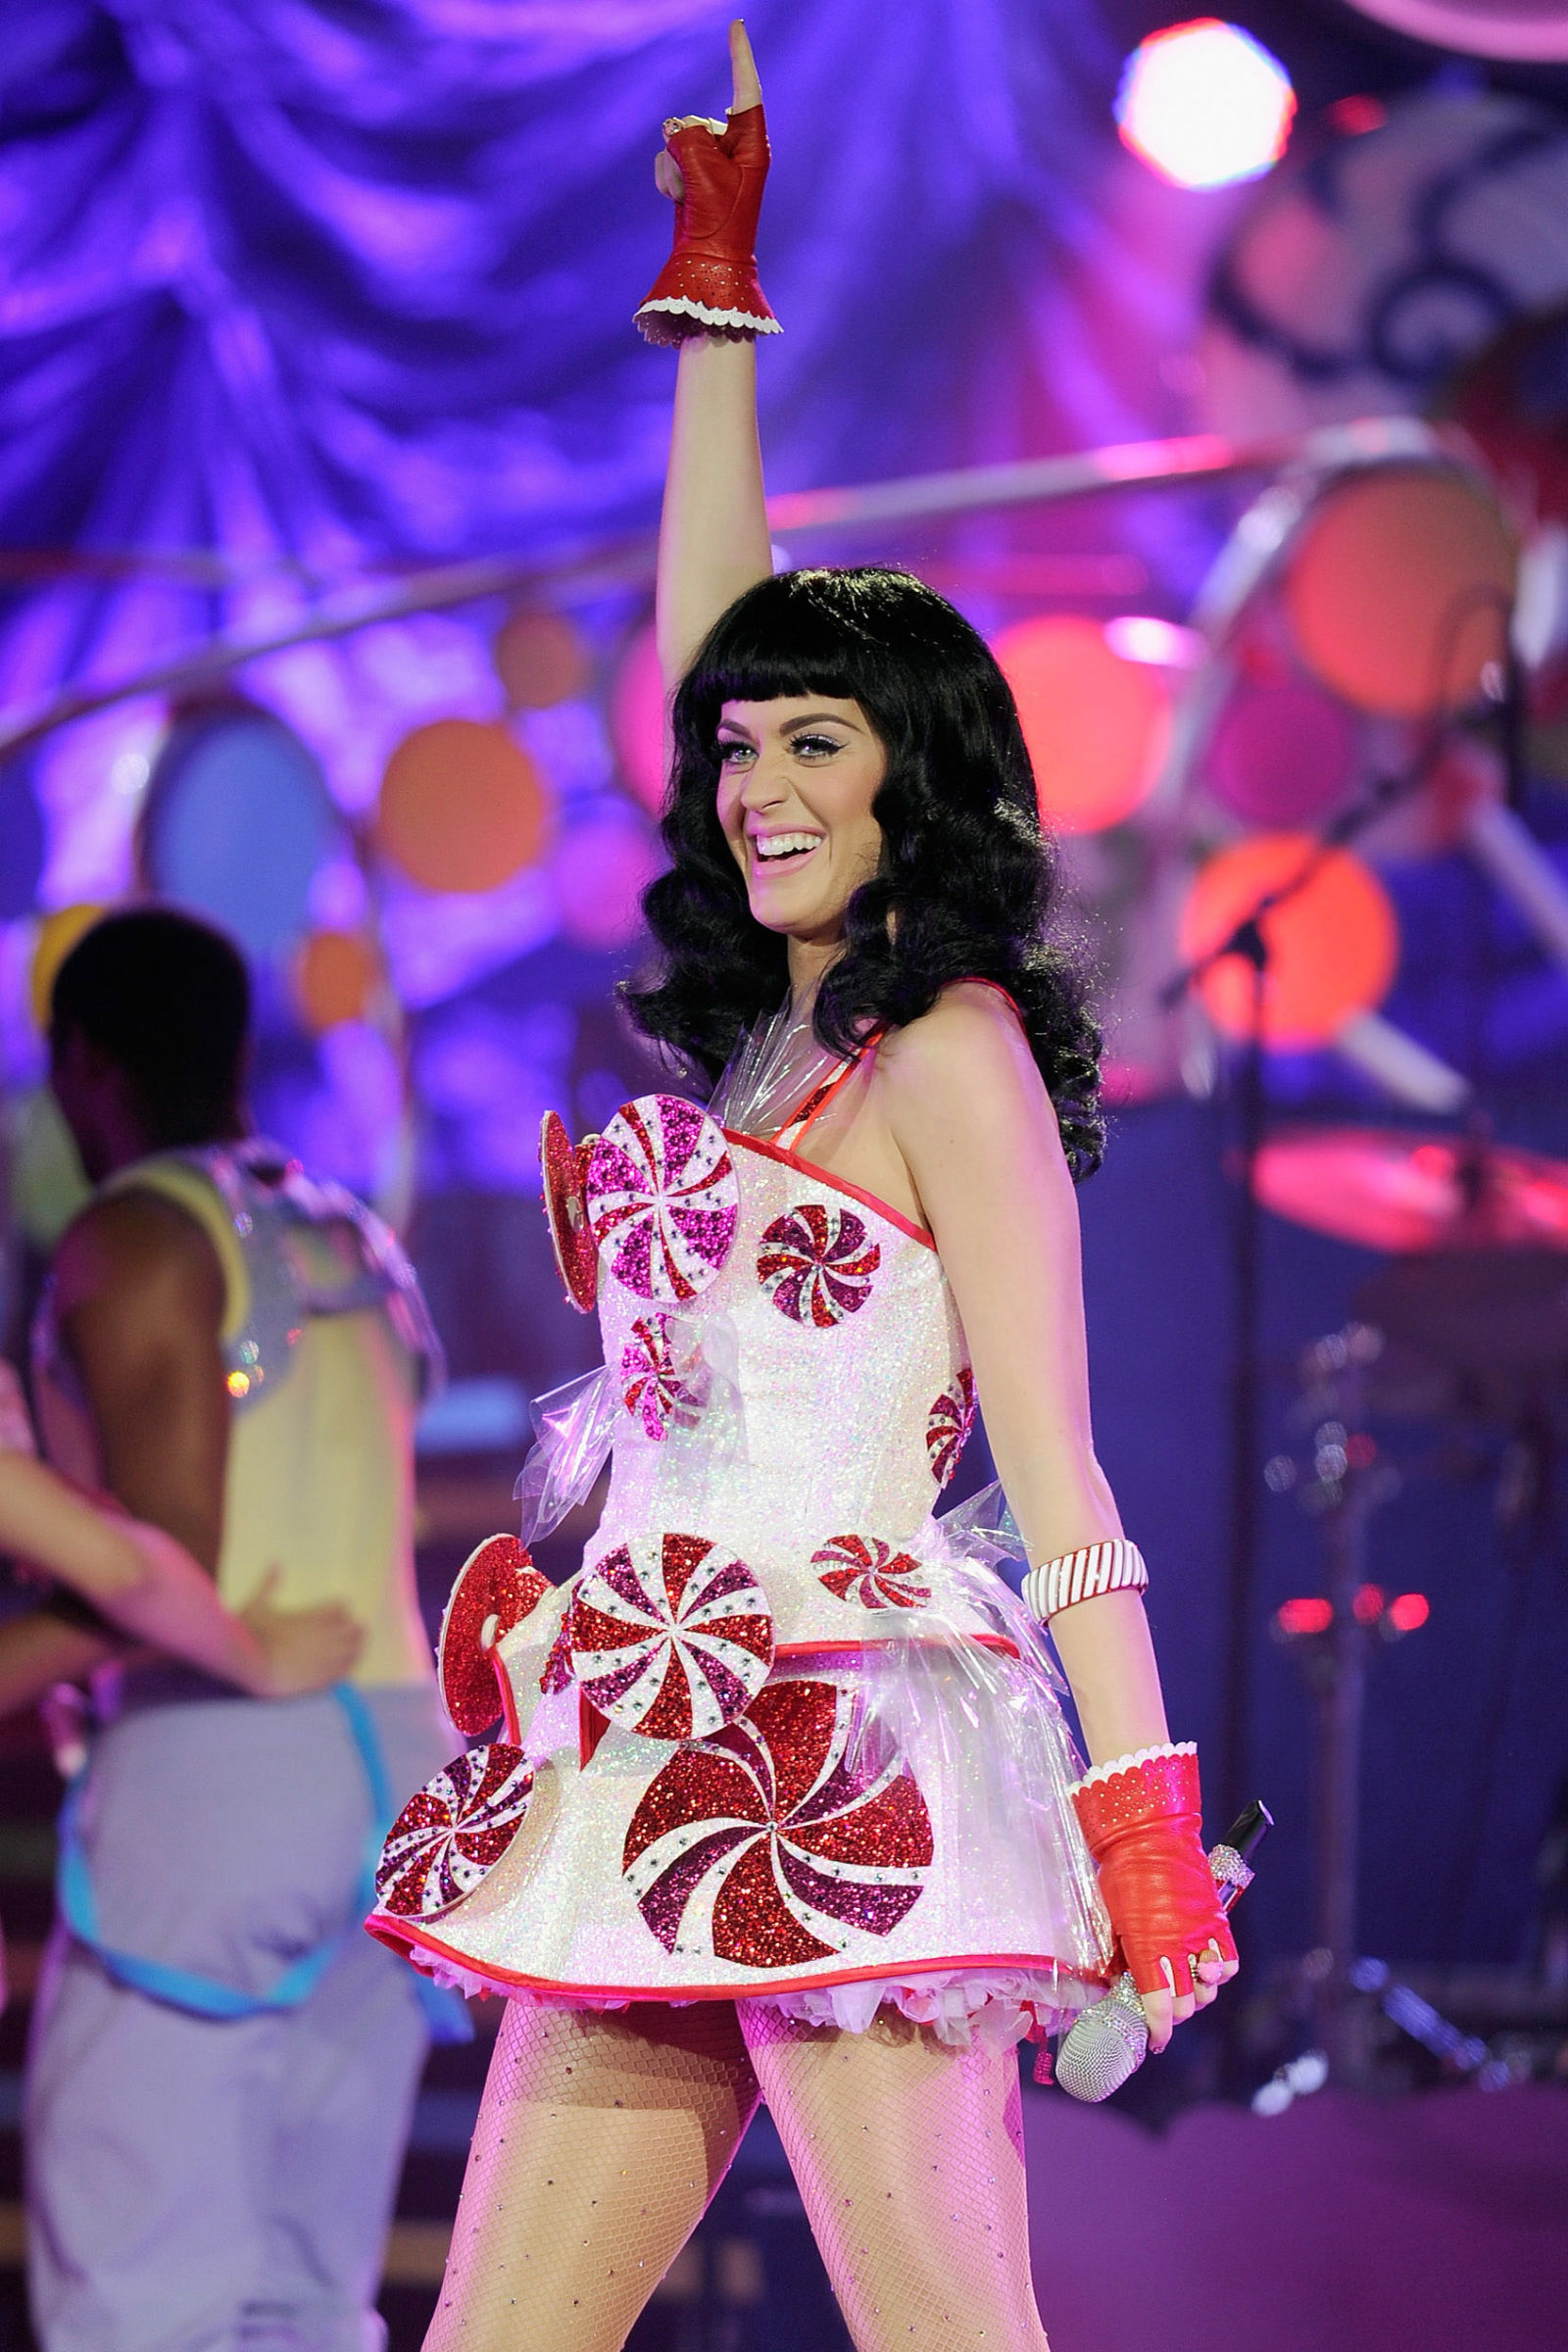 Katy Perry Dressed As Human Snack